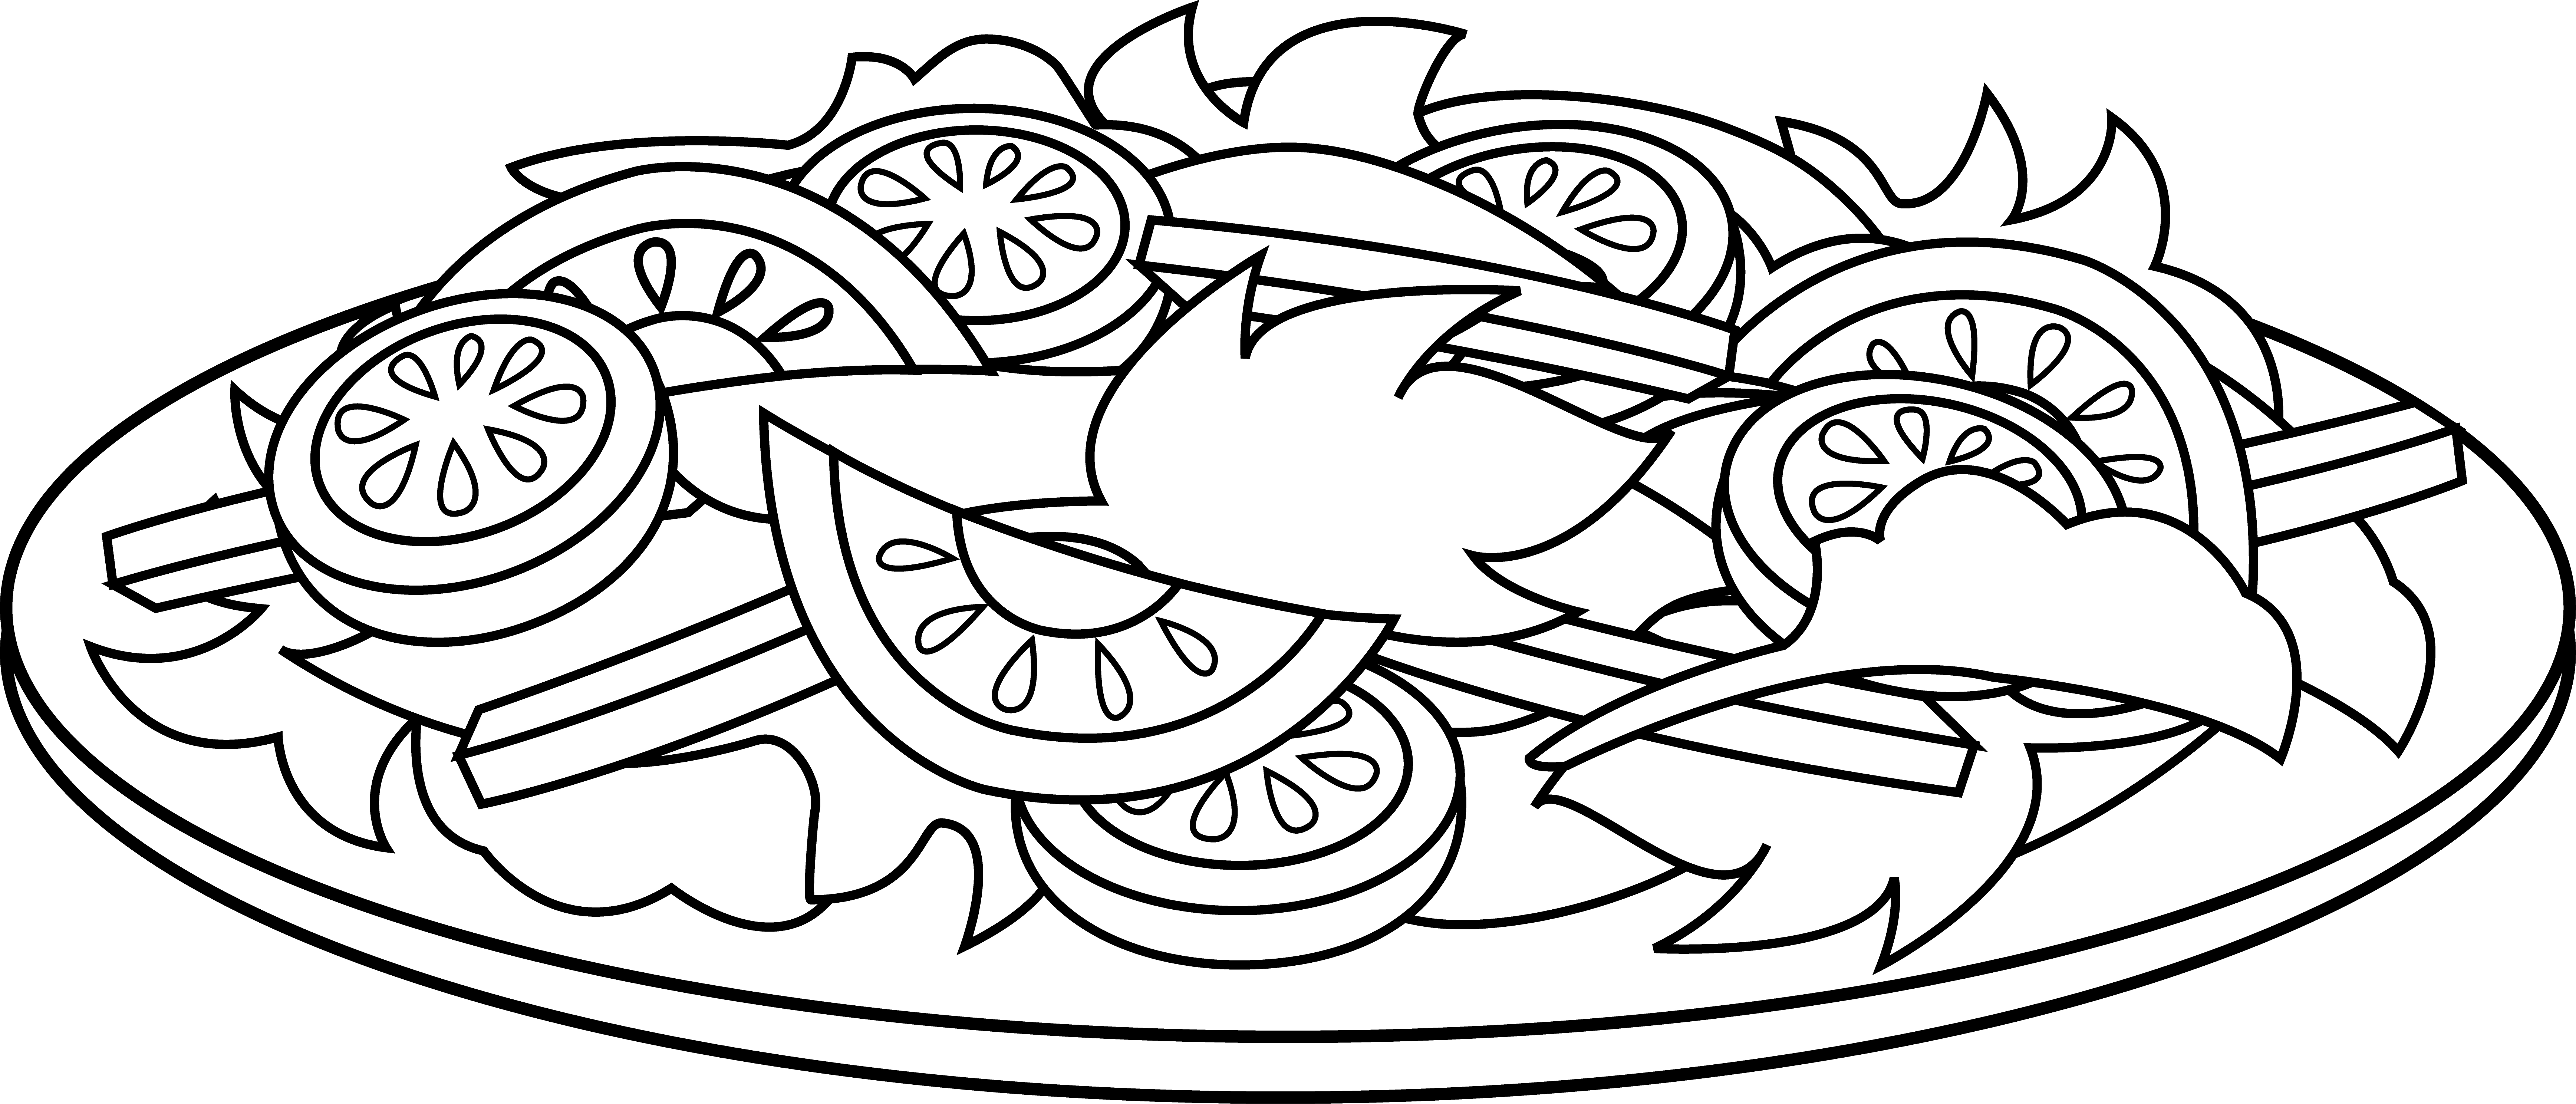 picture black and white stock Salad vector. Clip art free clipart